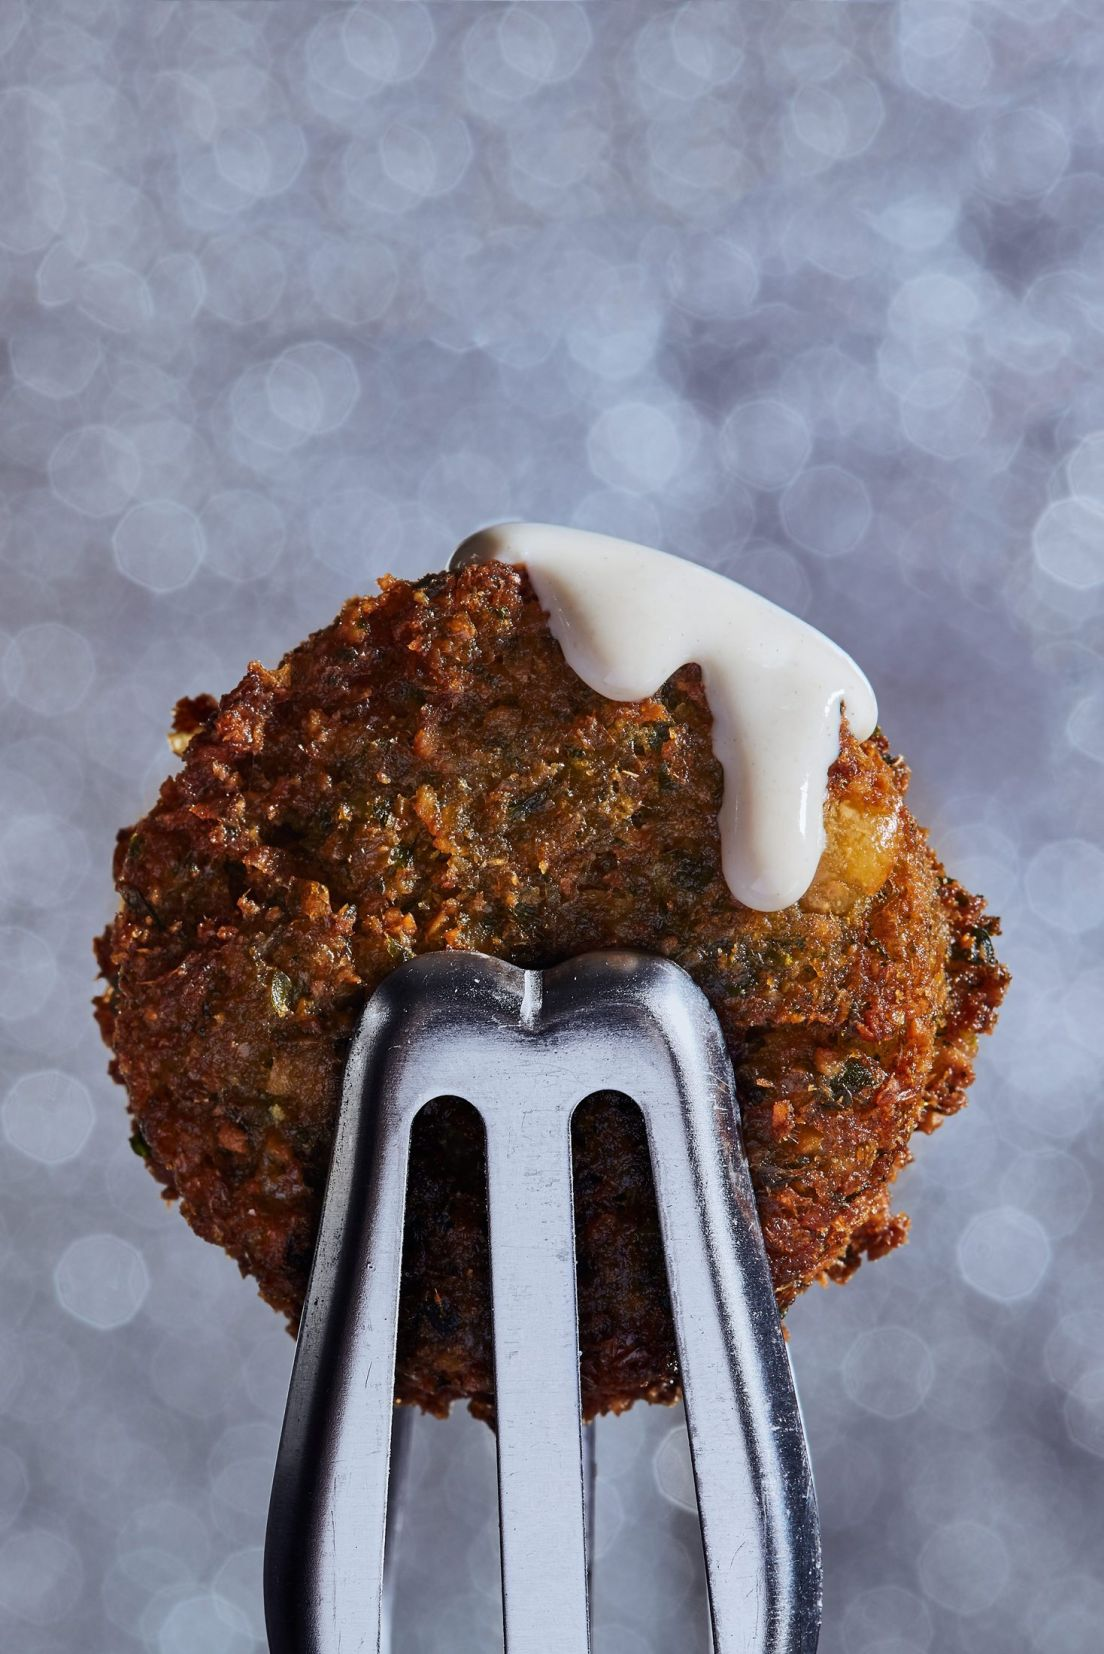 Israelis or Arabs – who owns falafel - and does it matter